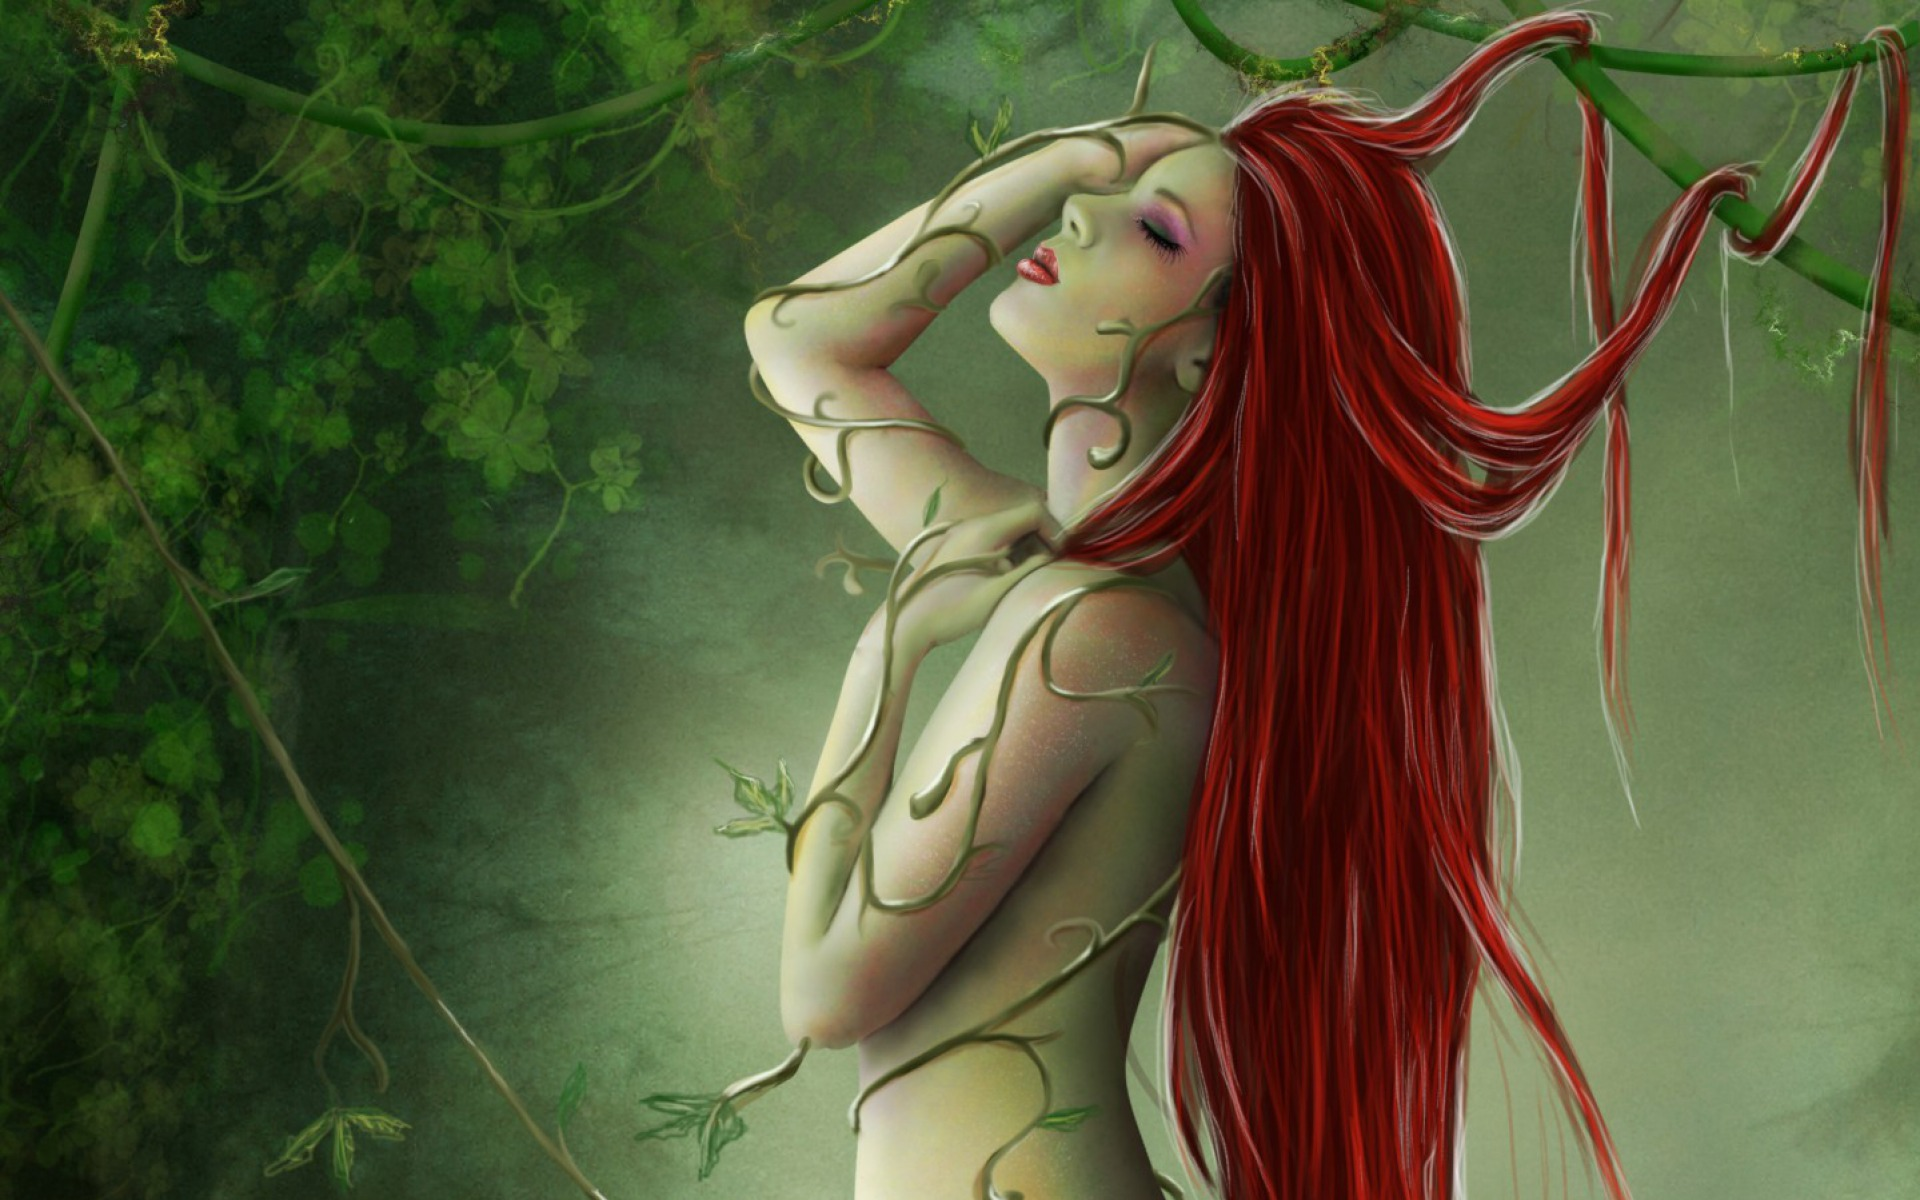 ws_Forest_Nymph_Red_Head_1920x1200